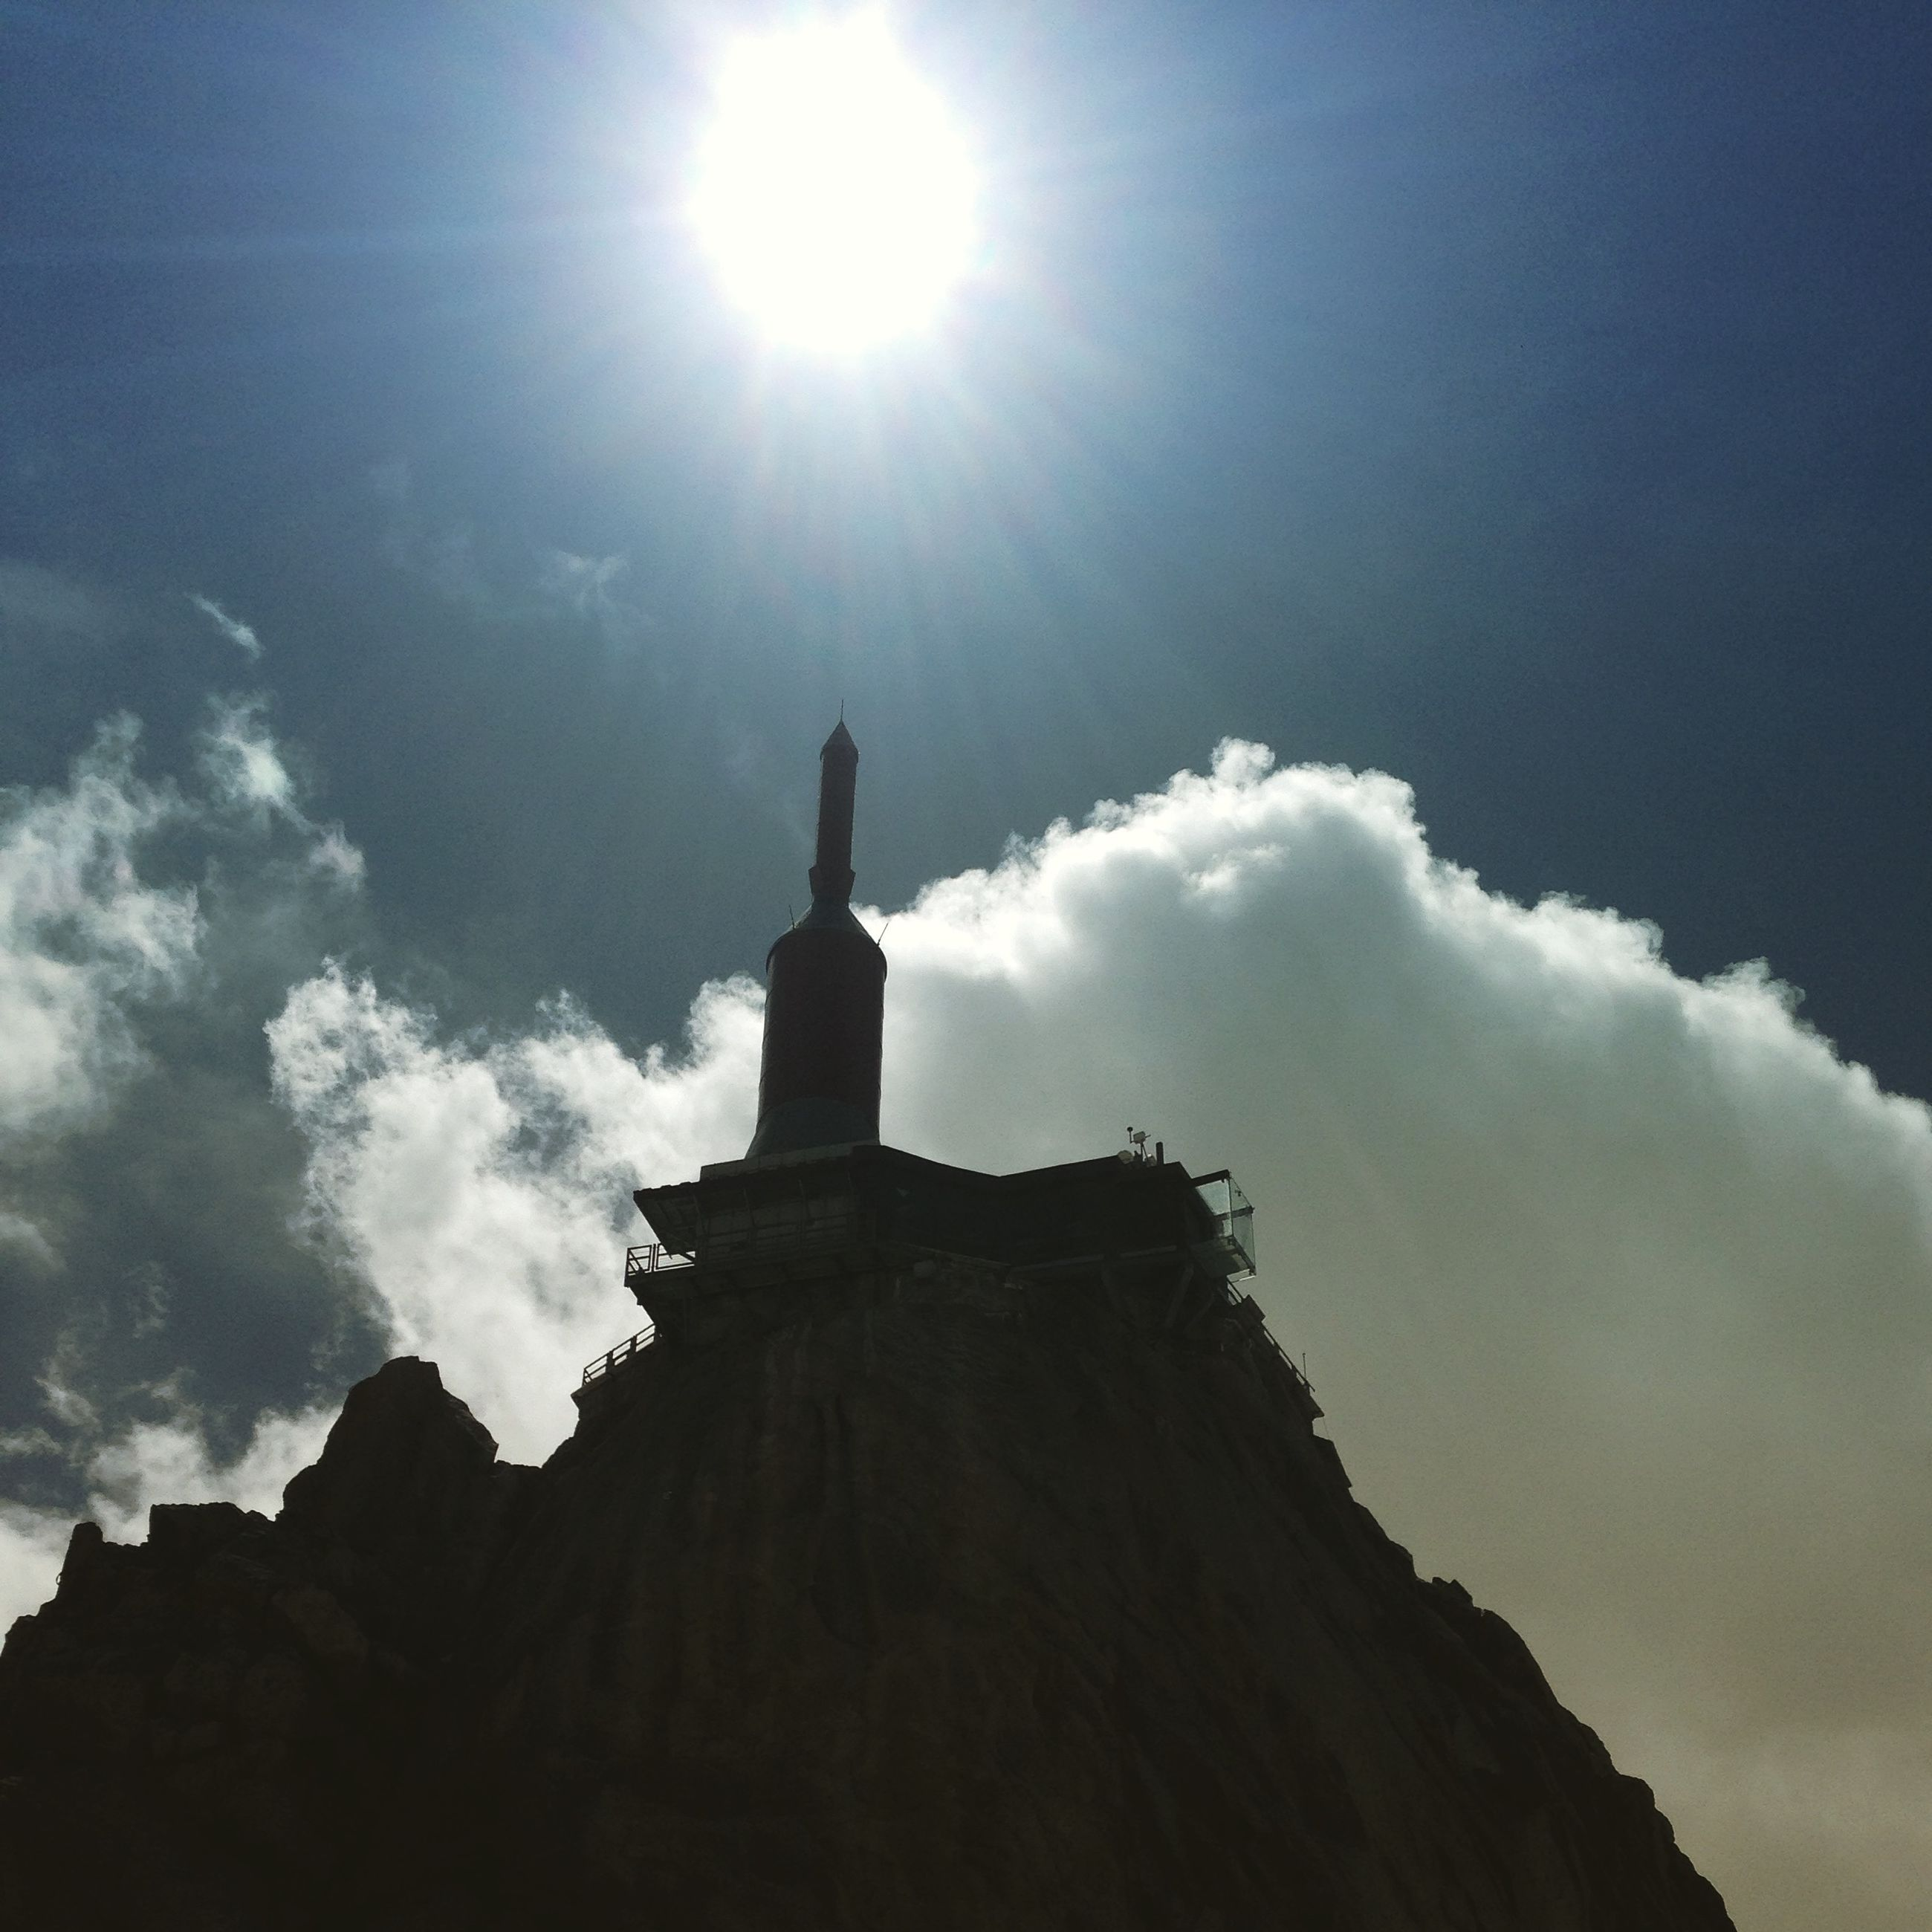 sun, low angle view, sunbeam, sky, religion, spirituality, sunlight, built structure, architecture, lens flare, place of worship, silhouette, building exterior, cross, cloud - sky, sunny, church, tranquility, nature